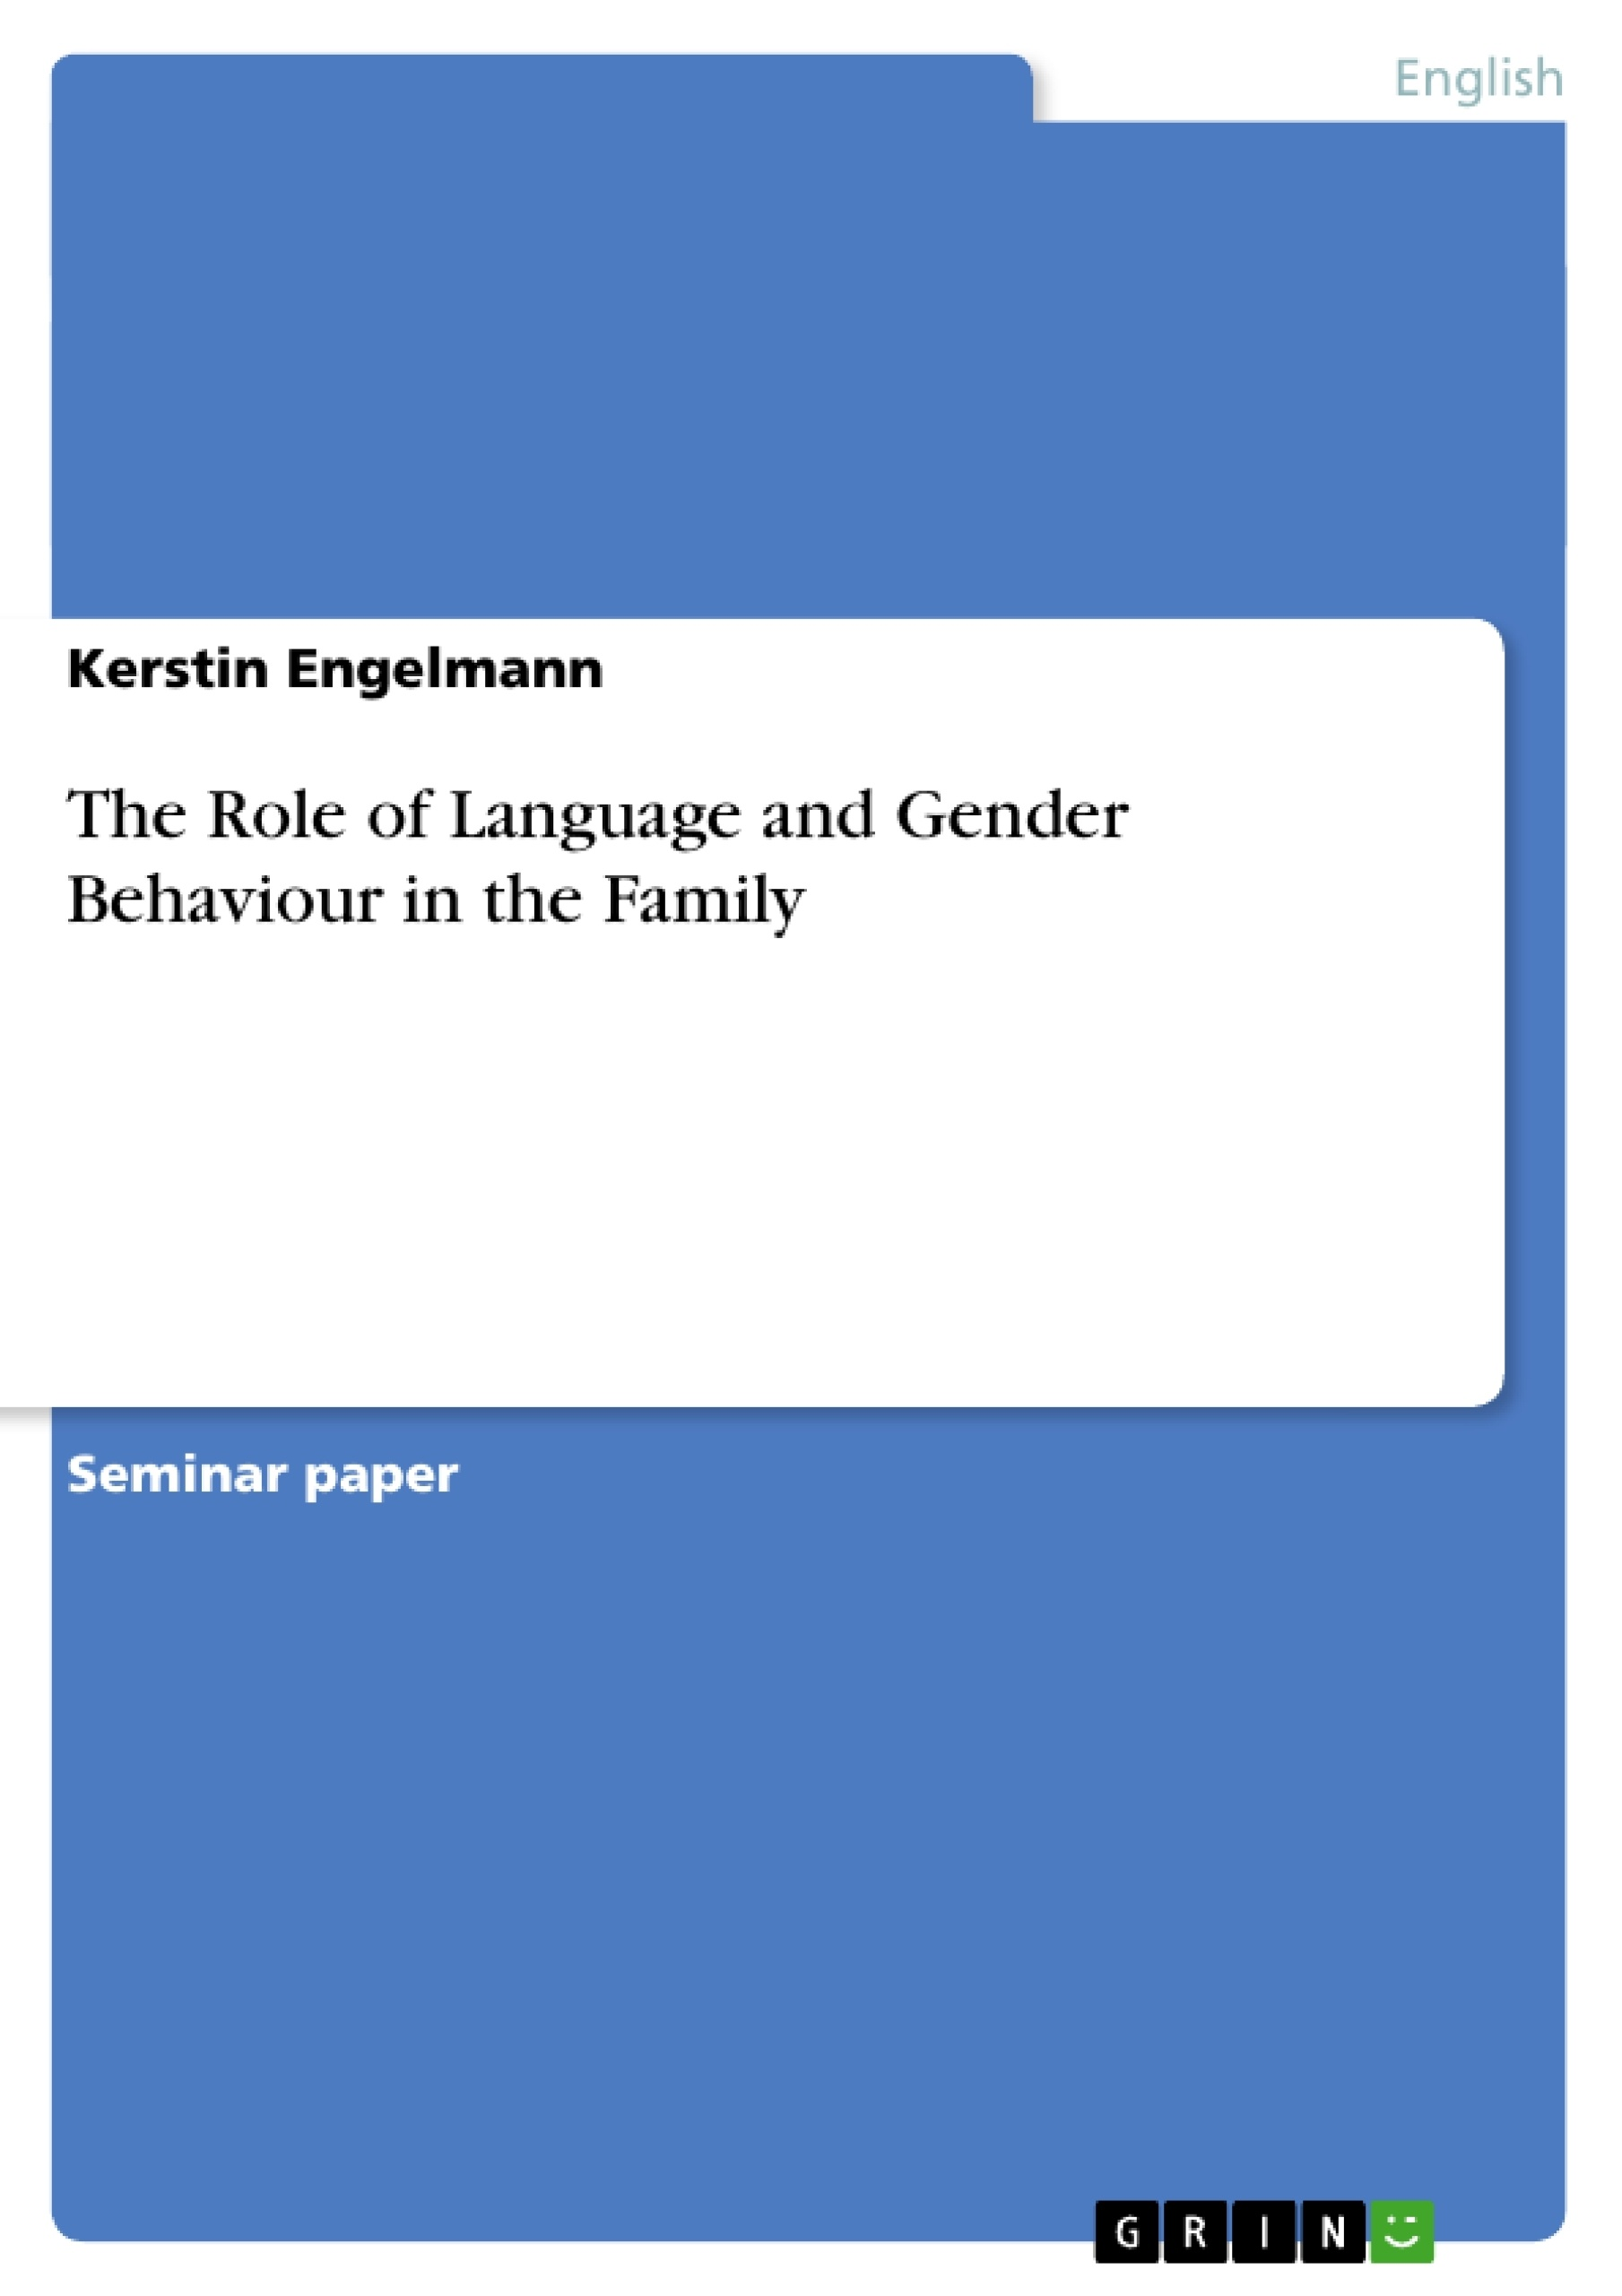 Title: The Role of Language and Gender Behaviour in the Family